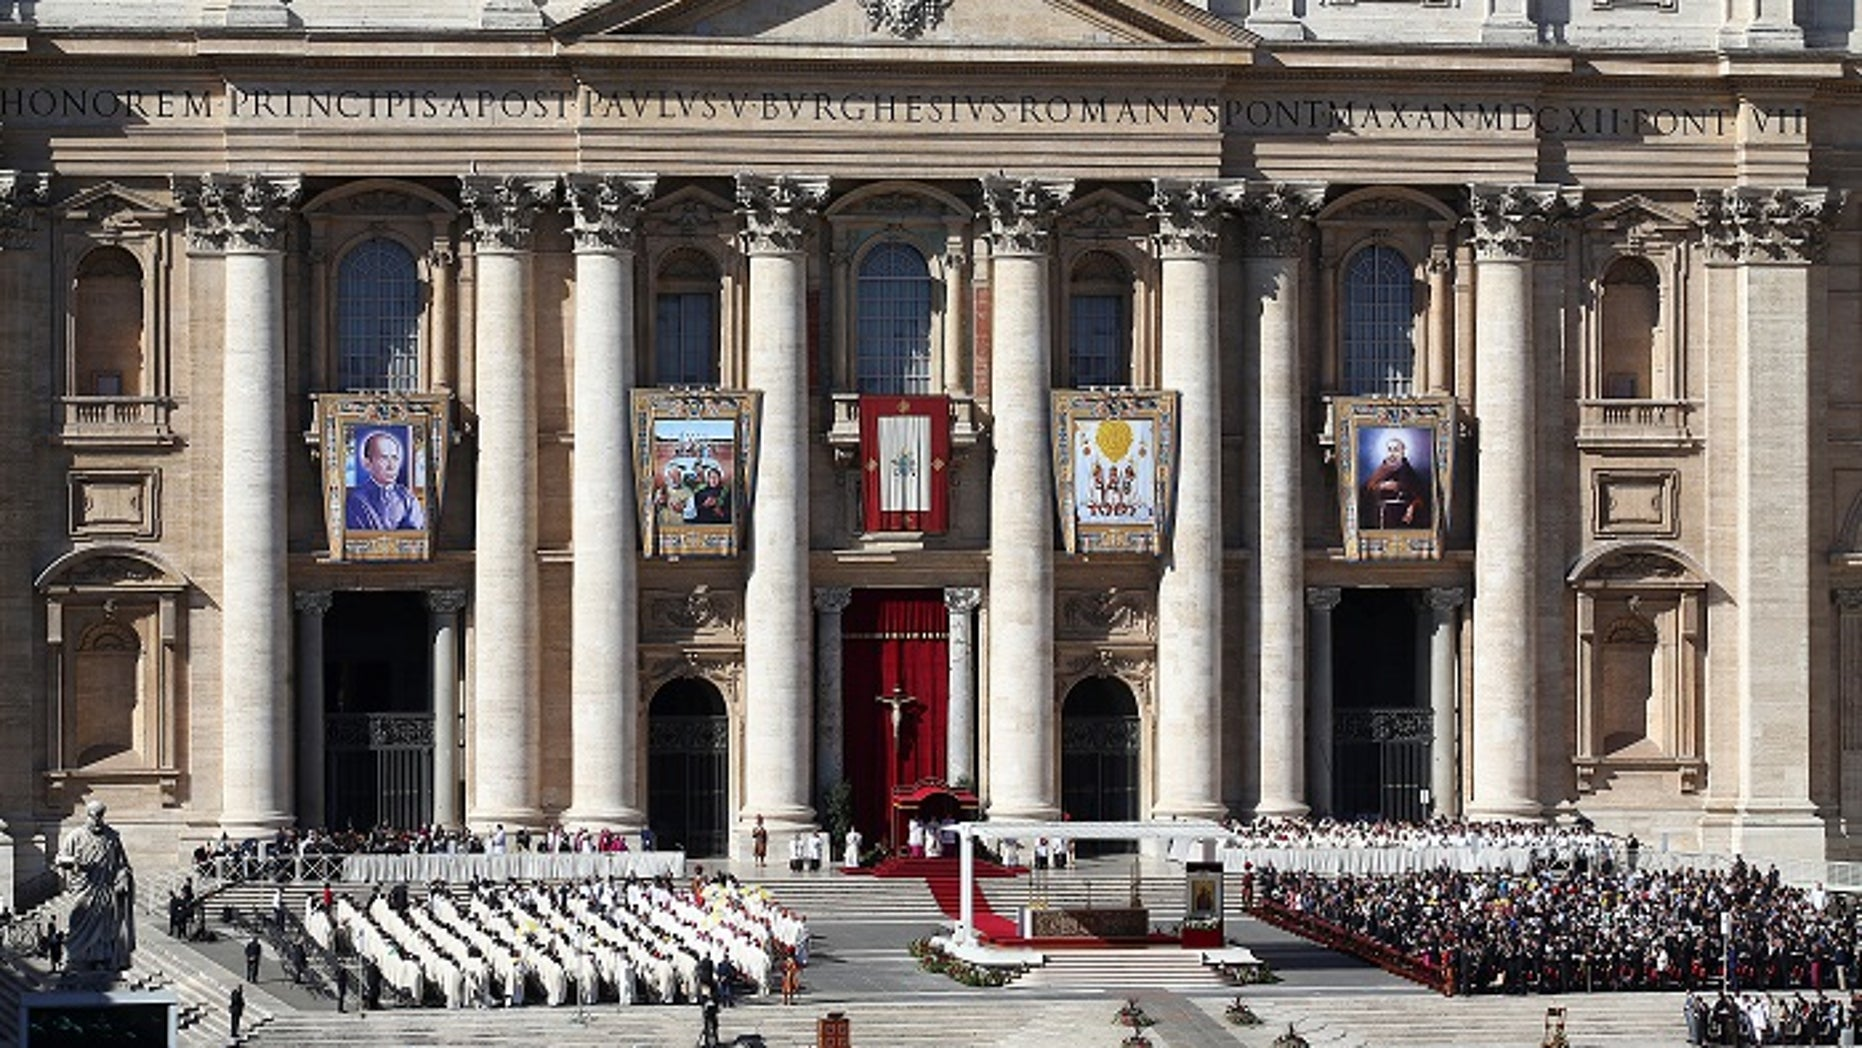 Pope Francis leads a Mass in St. Peter's Square, Vatican City, Oct. 15, 2017.